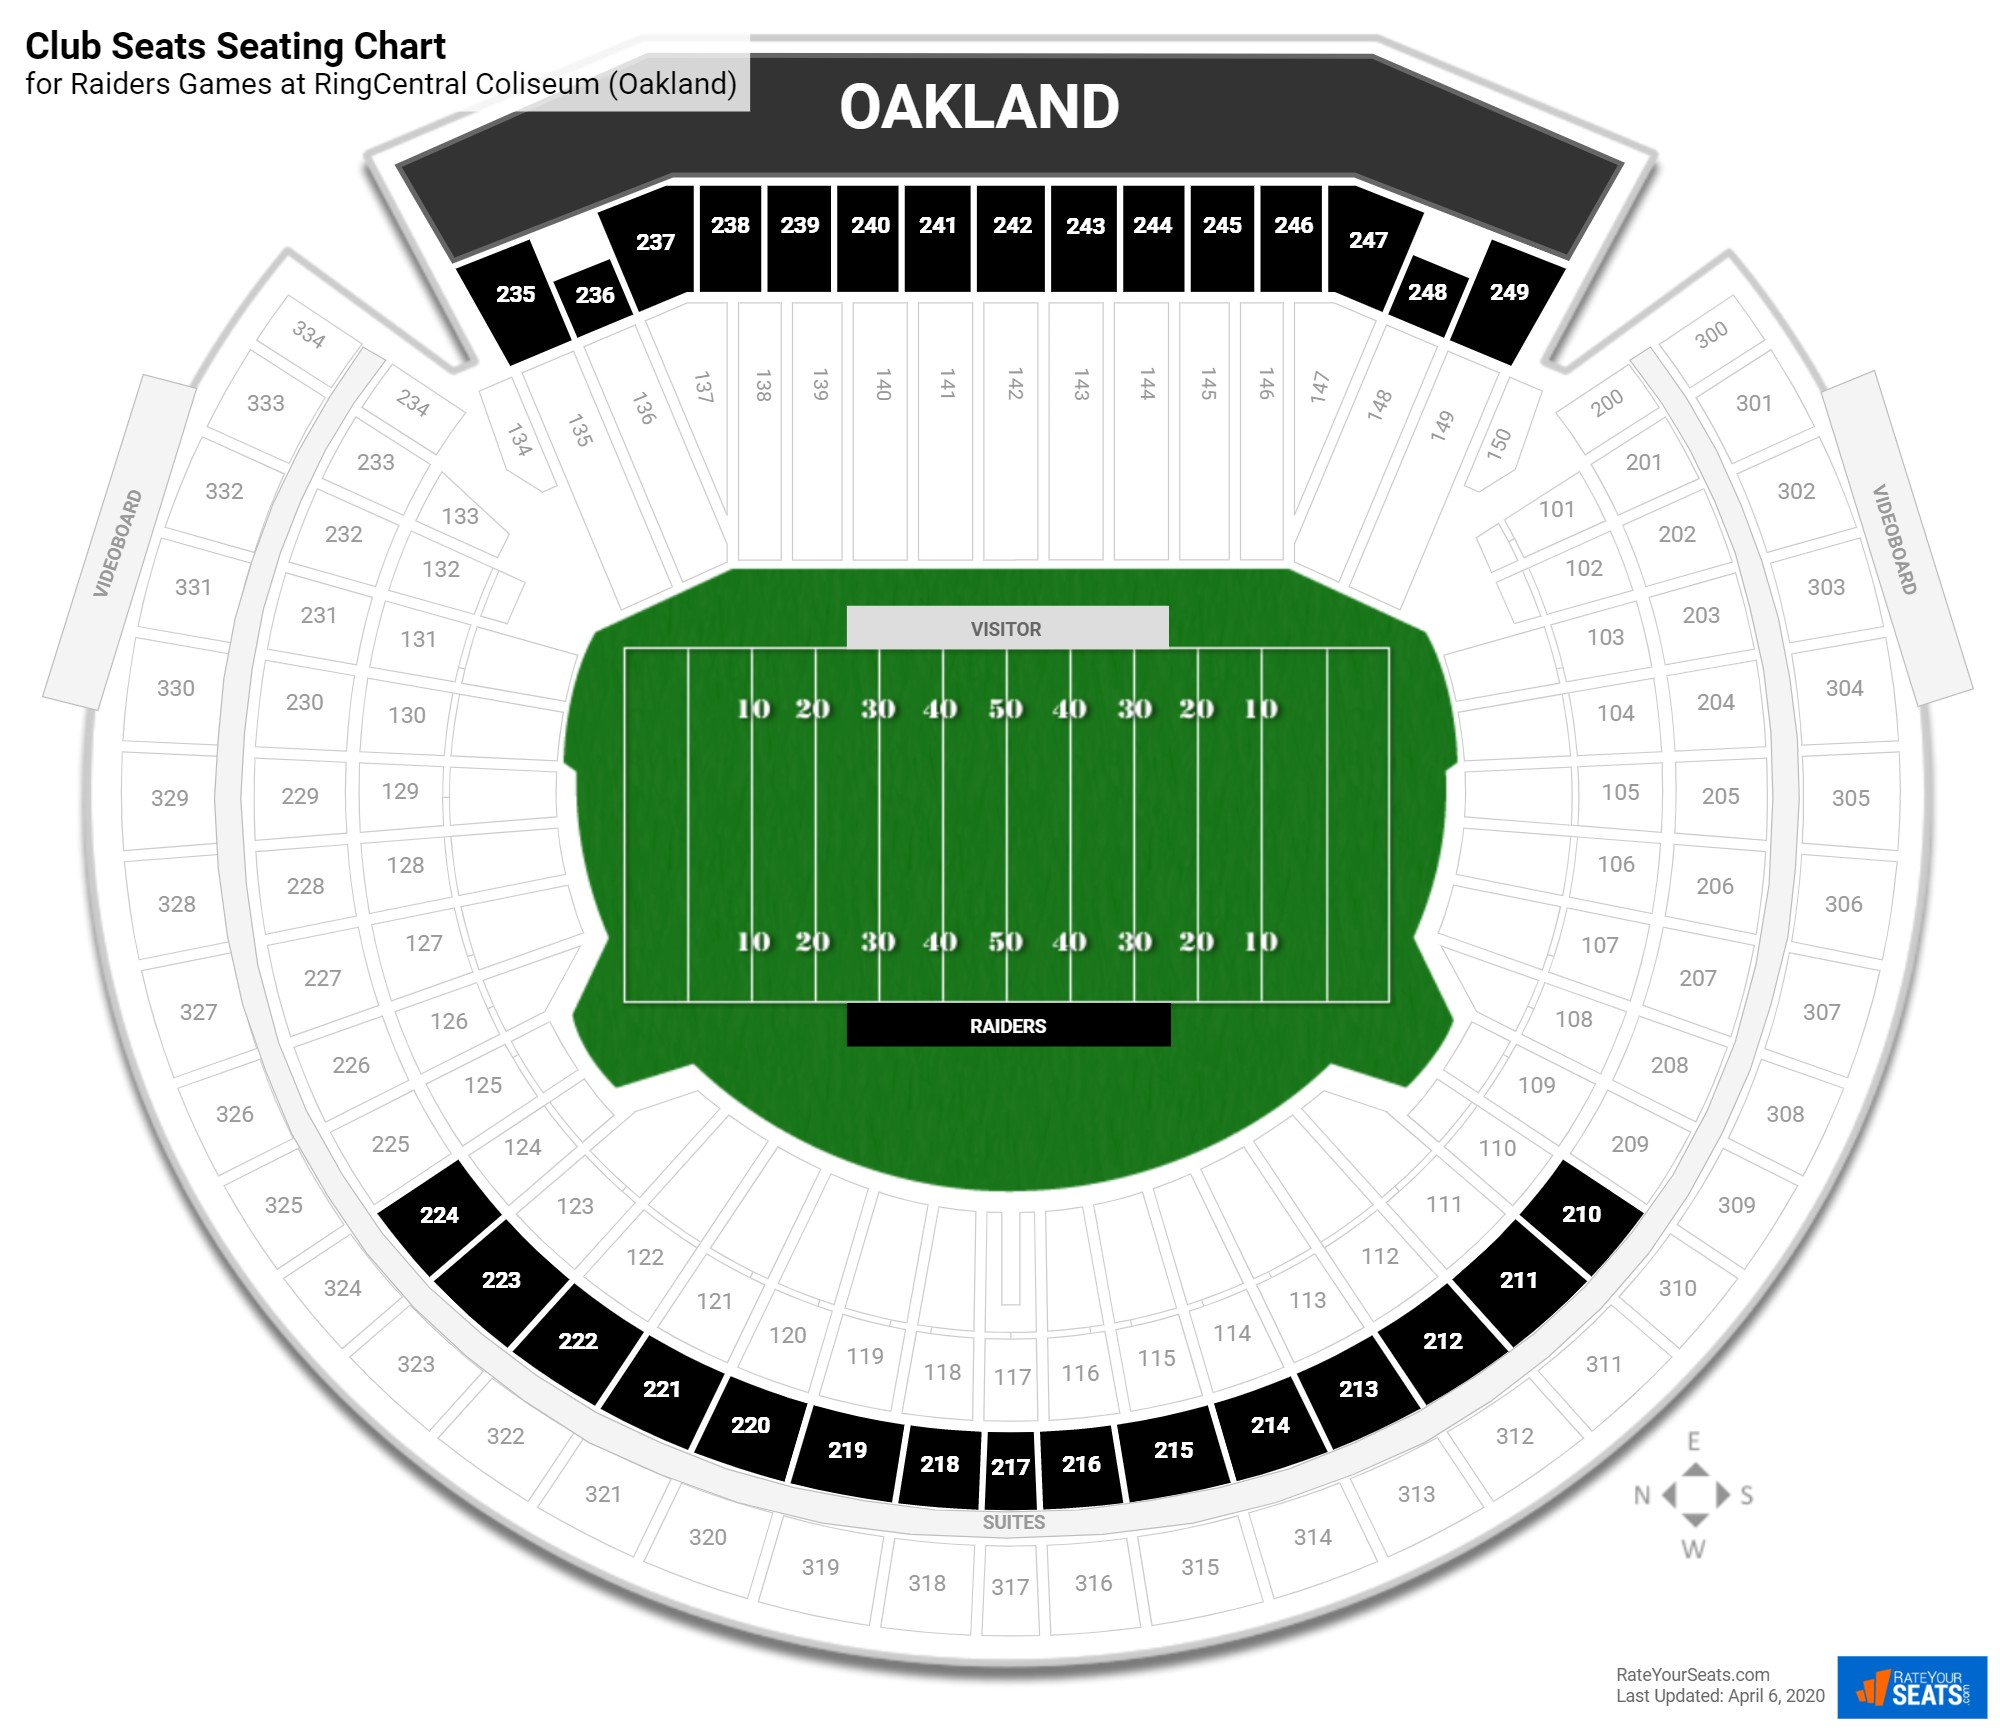 Oakland Coliseum Club Seats seating chart